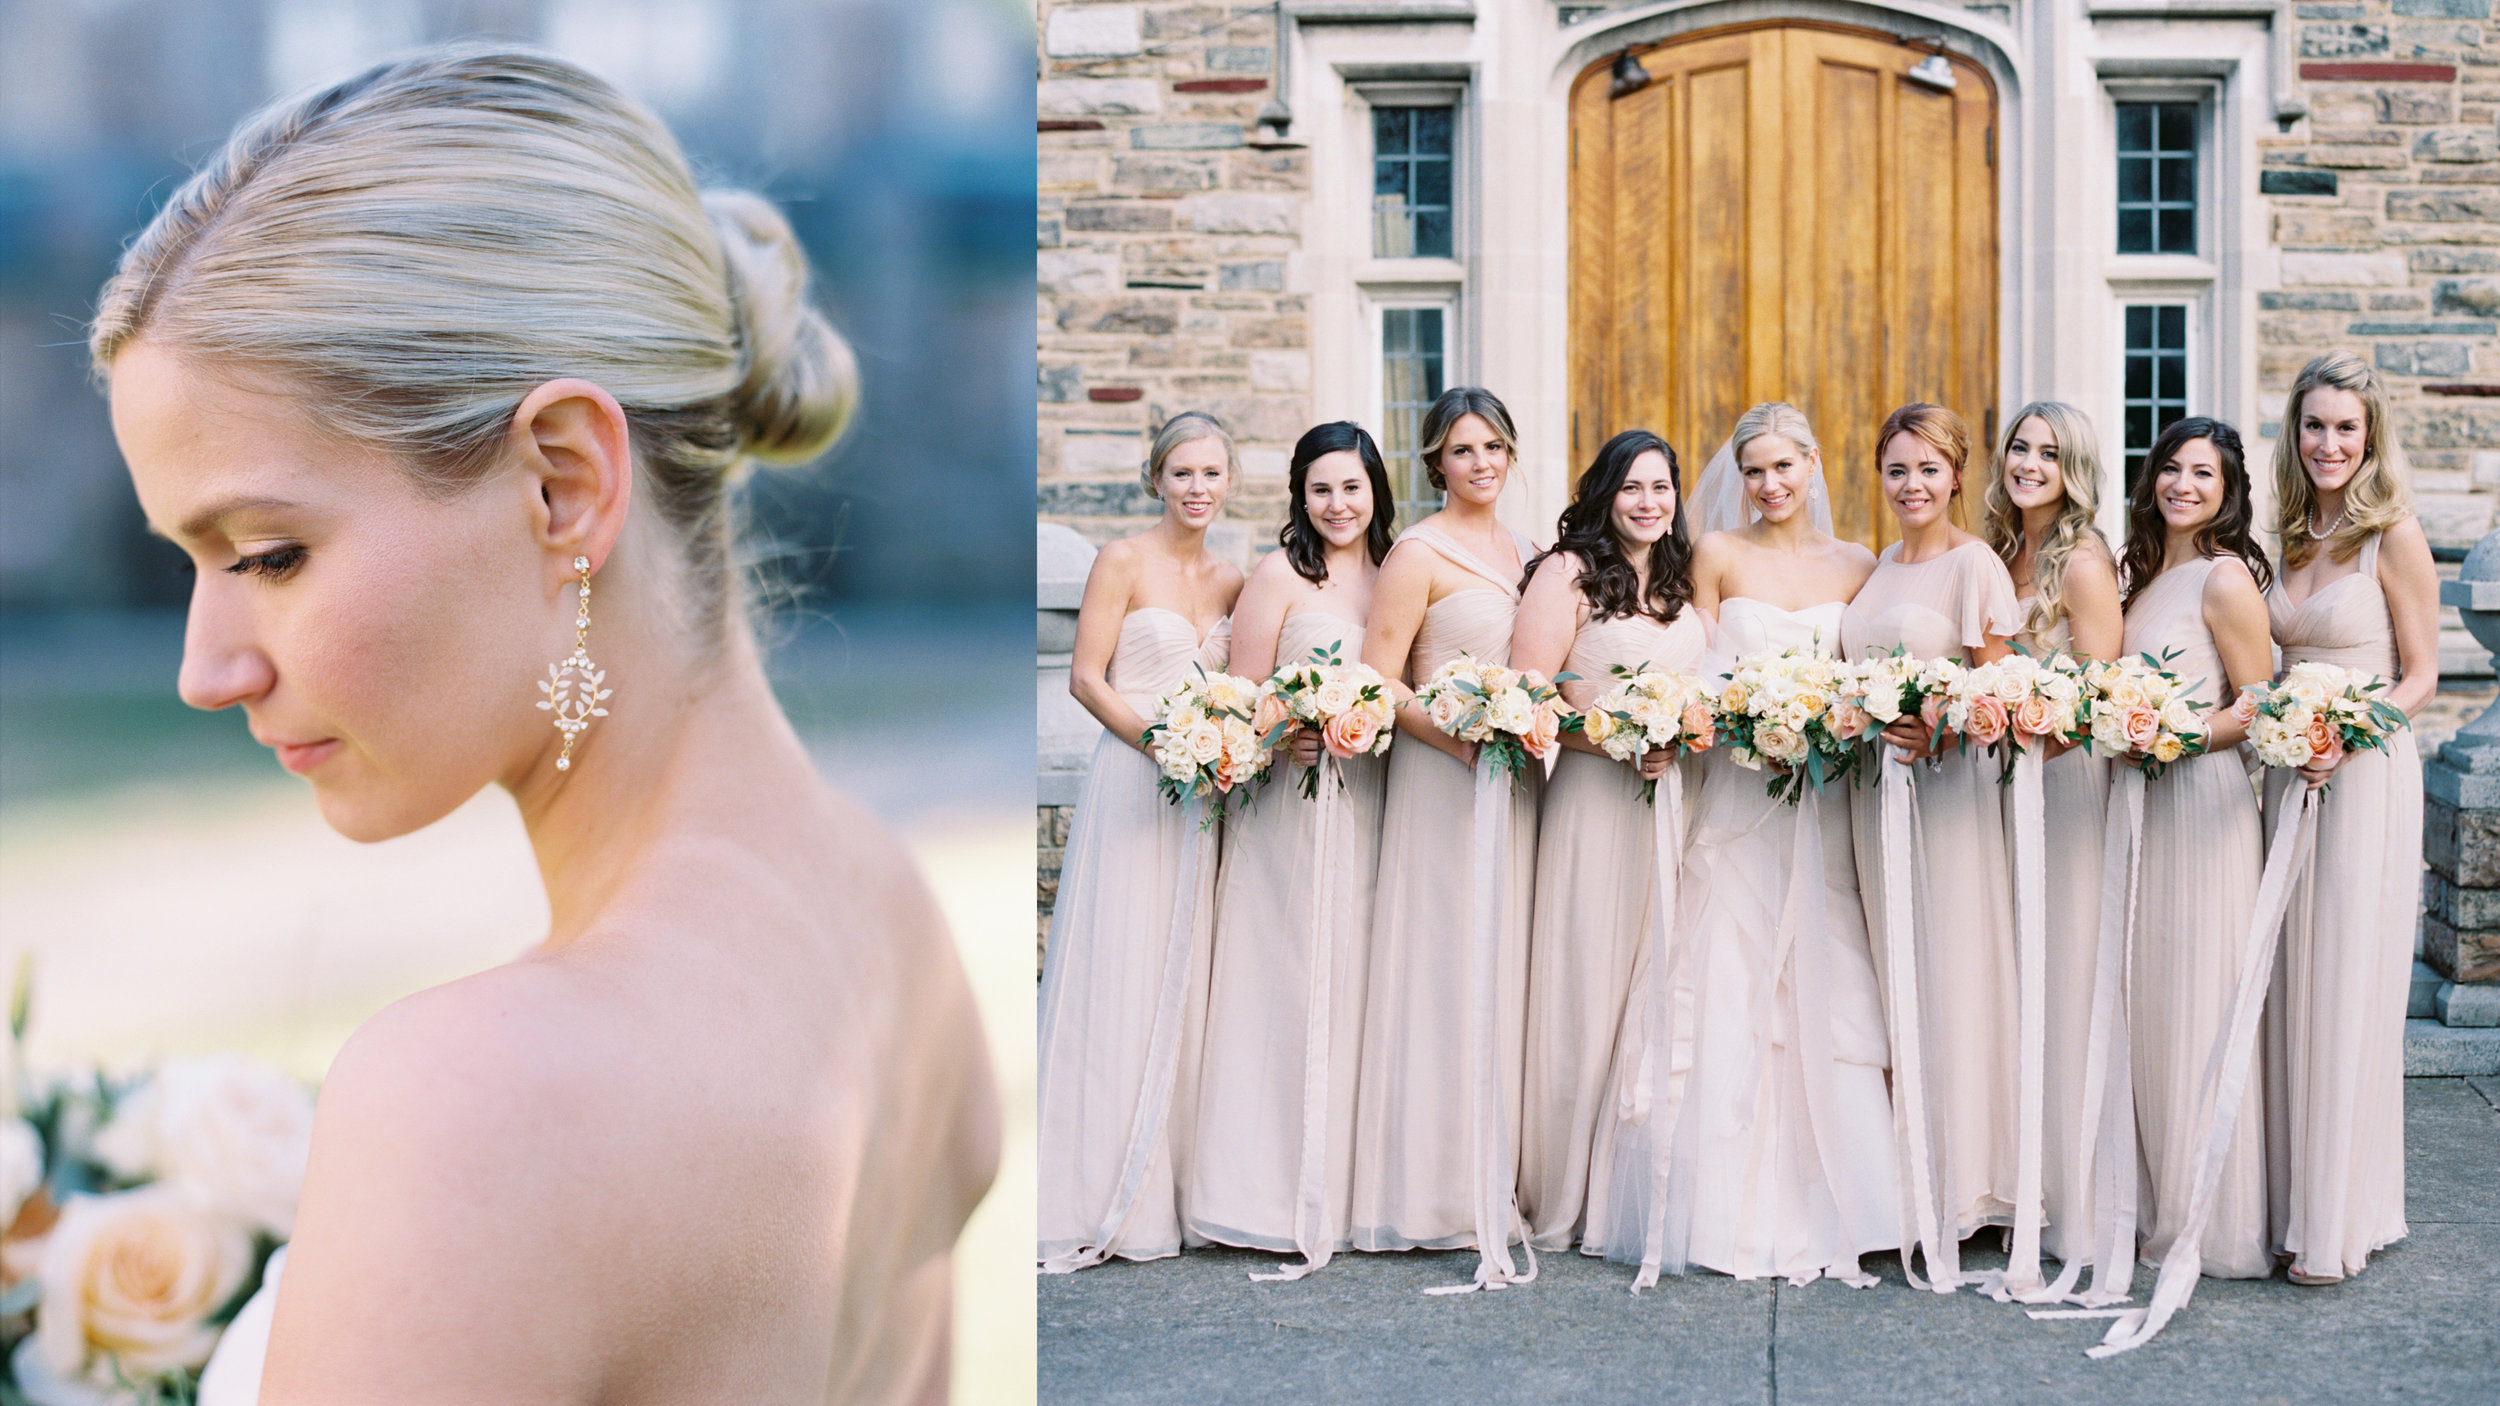 Amanda did the makeup for Allison (Mirror Mirror's executive producer) and her bridal party wedding.  Photos by Amanda's husband, Austin Gros, who is an incredible wedding photographer!  Check out his work here.